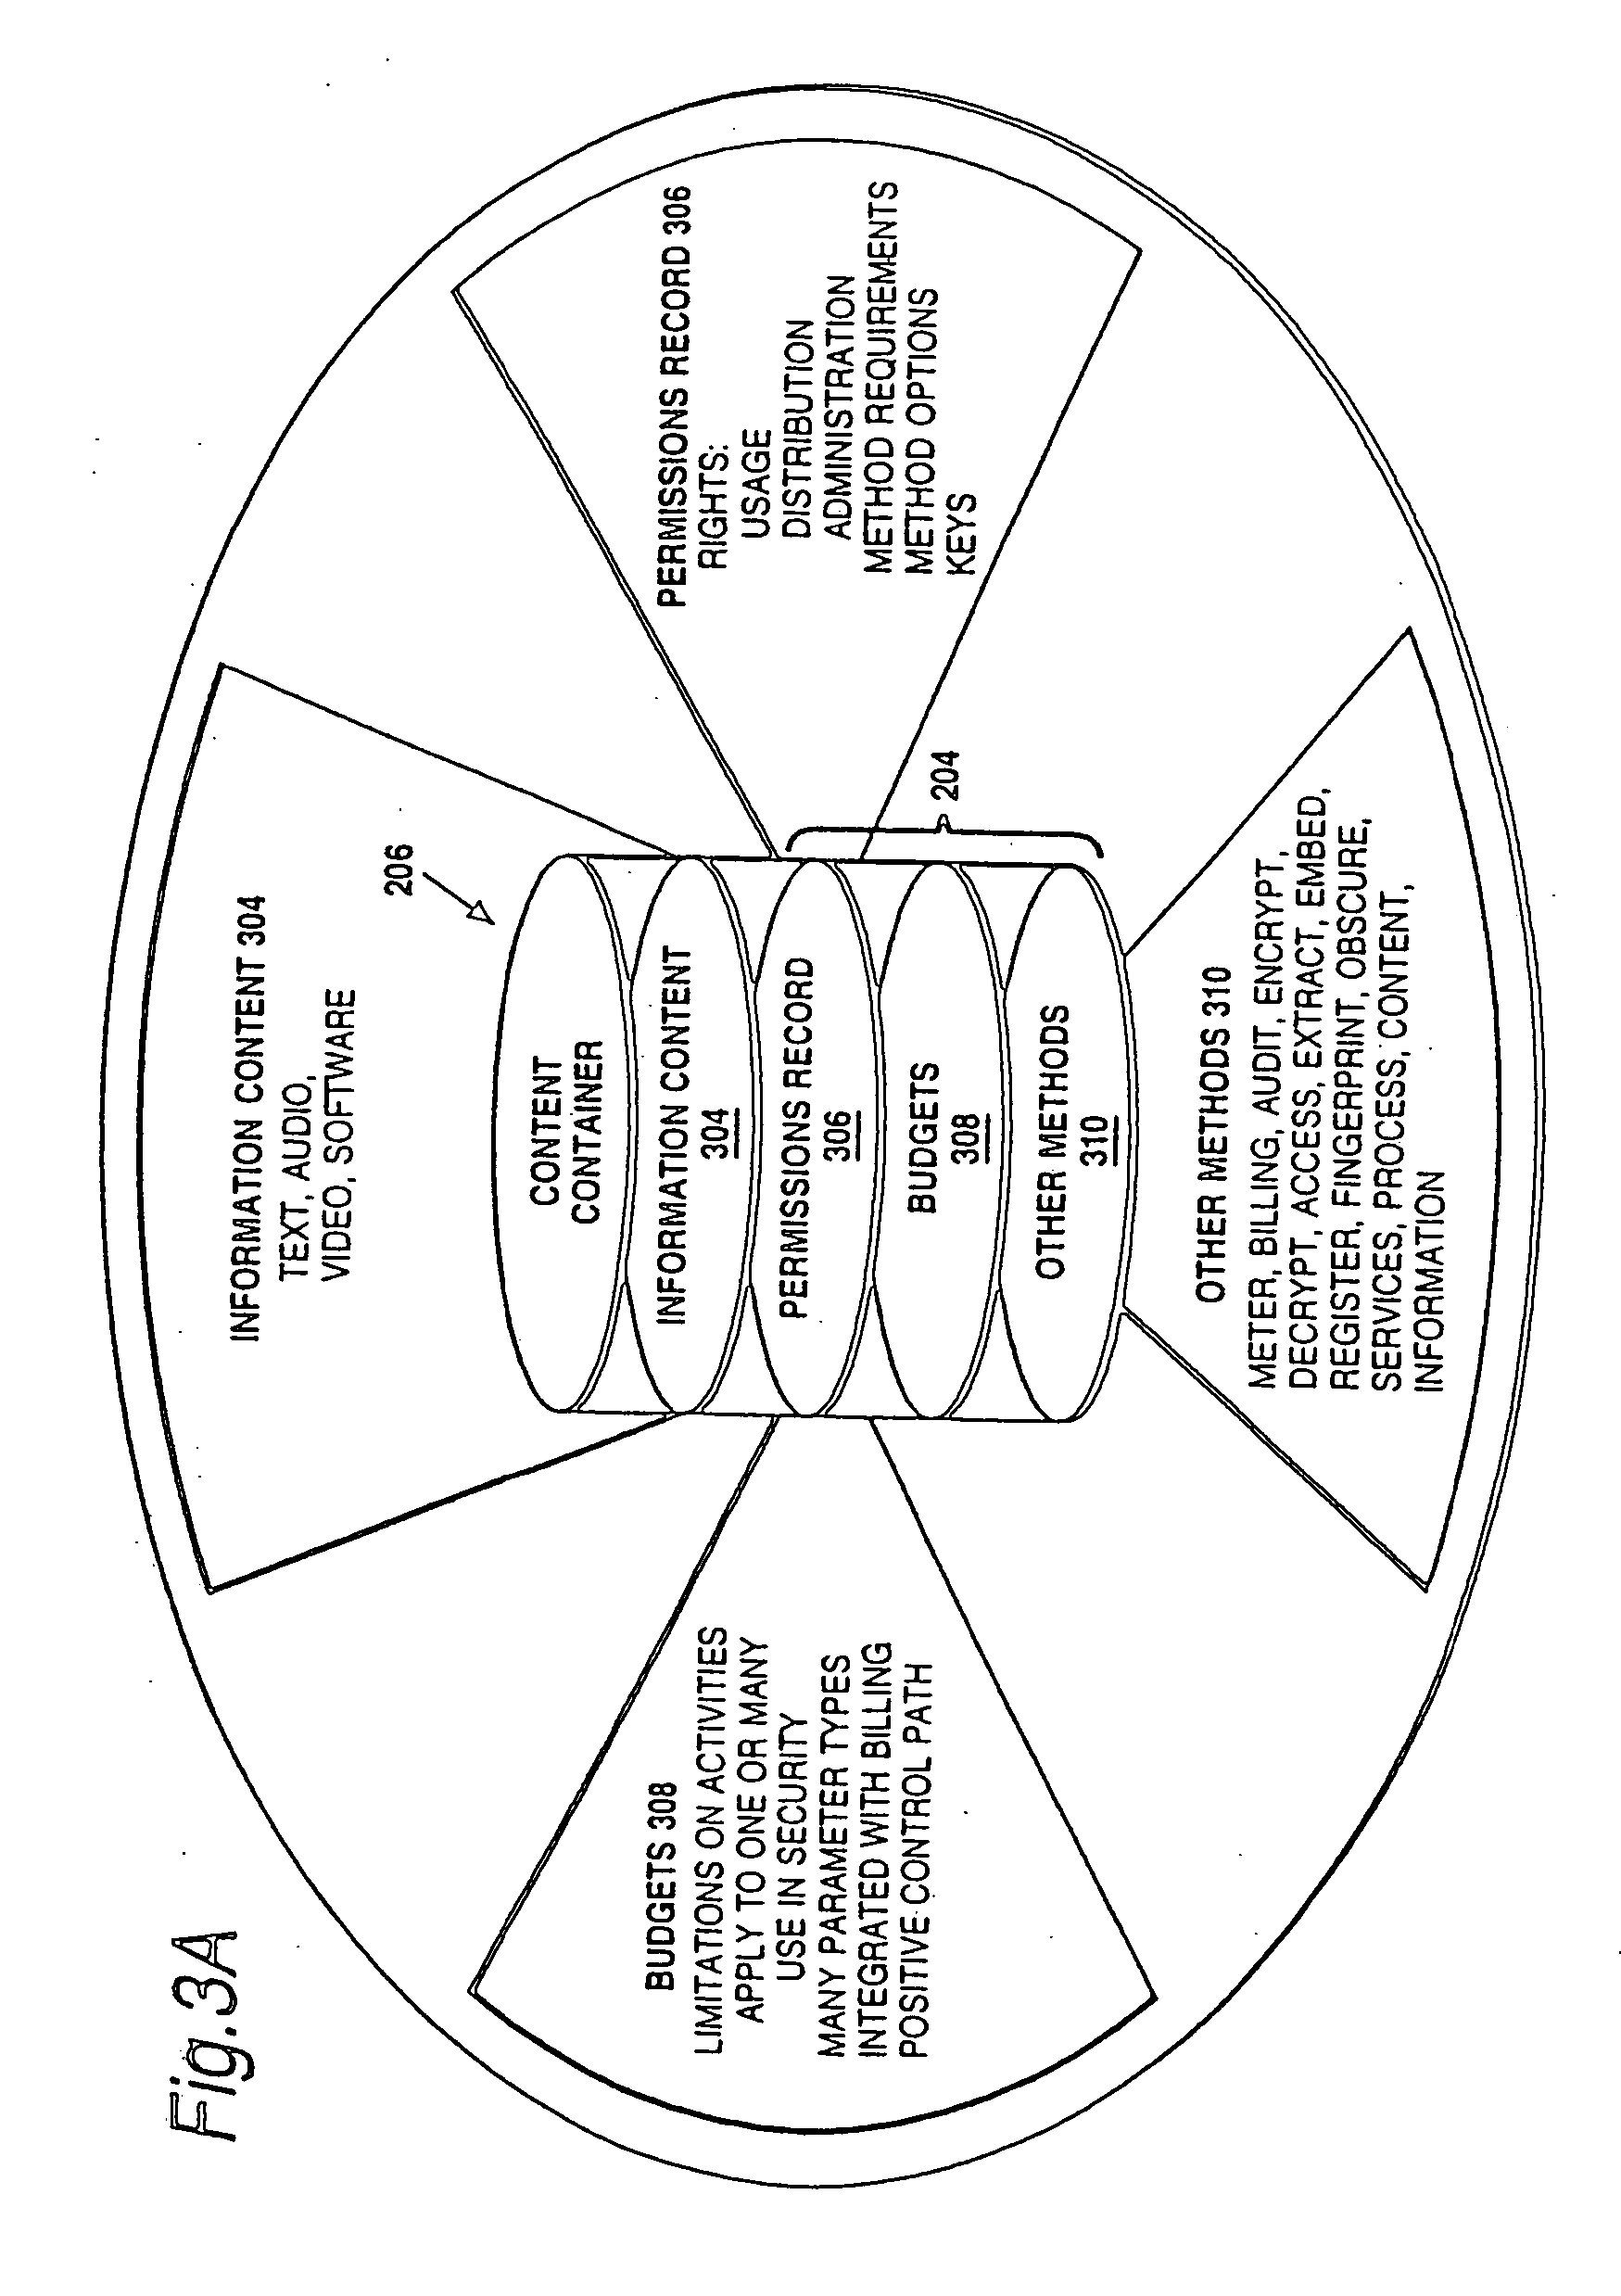 Us20060200392a1 cryptographic methods apparatus and systems for storage media electronic rights management in closed and connected appliances